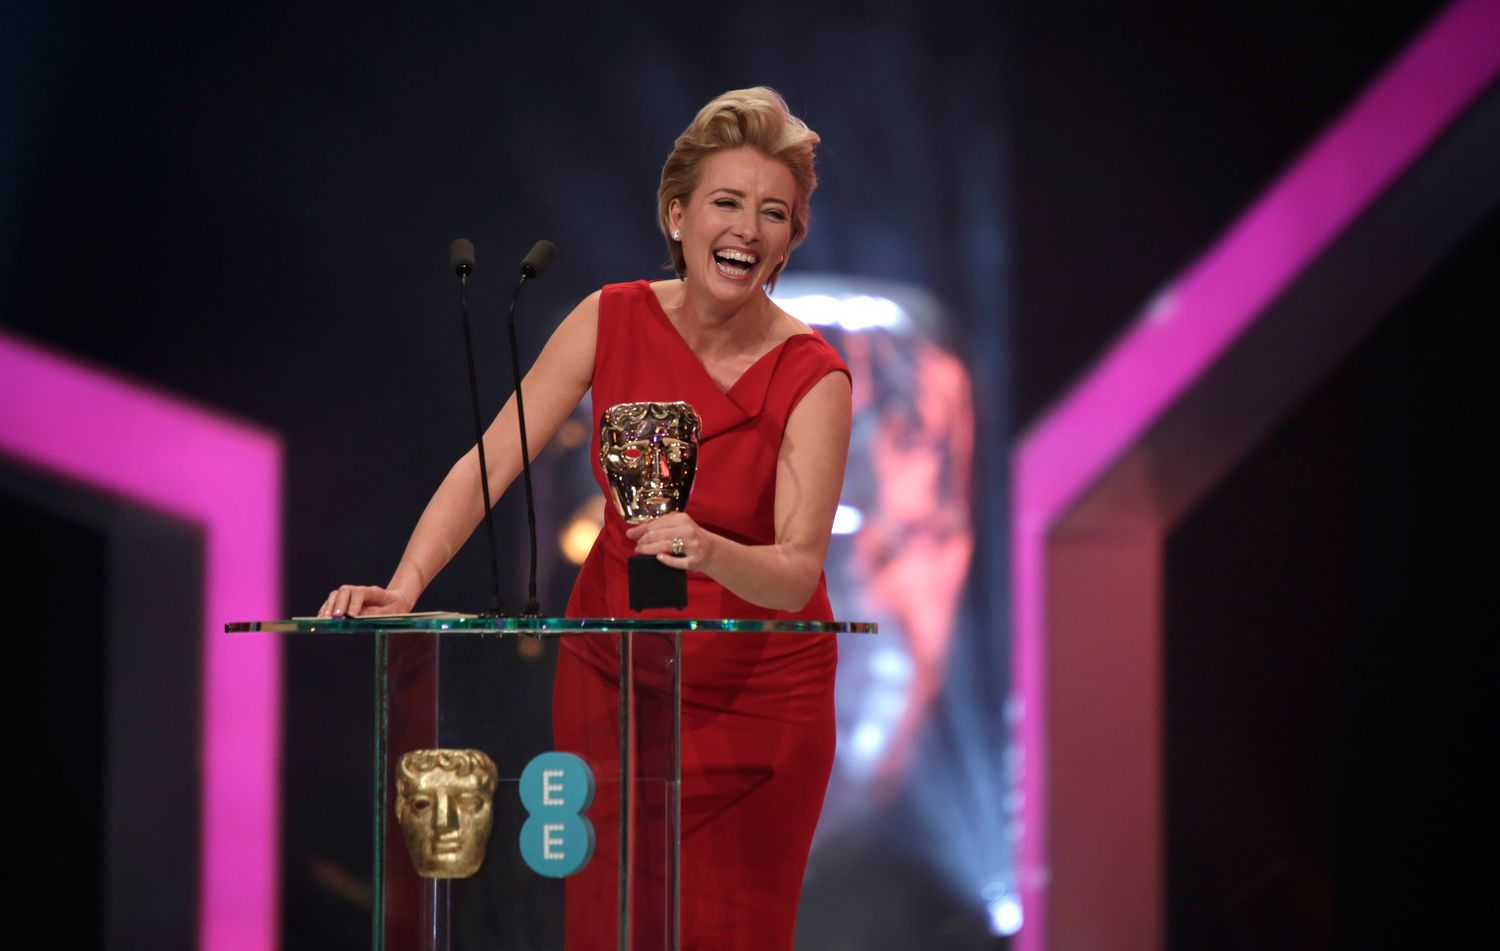 Emma Thompson presents the BAFTA Film Award for Supporting Actor